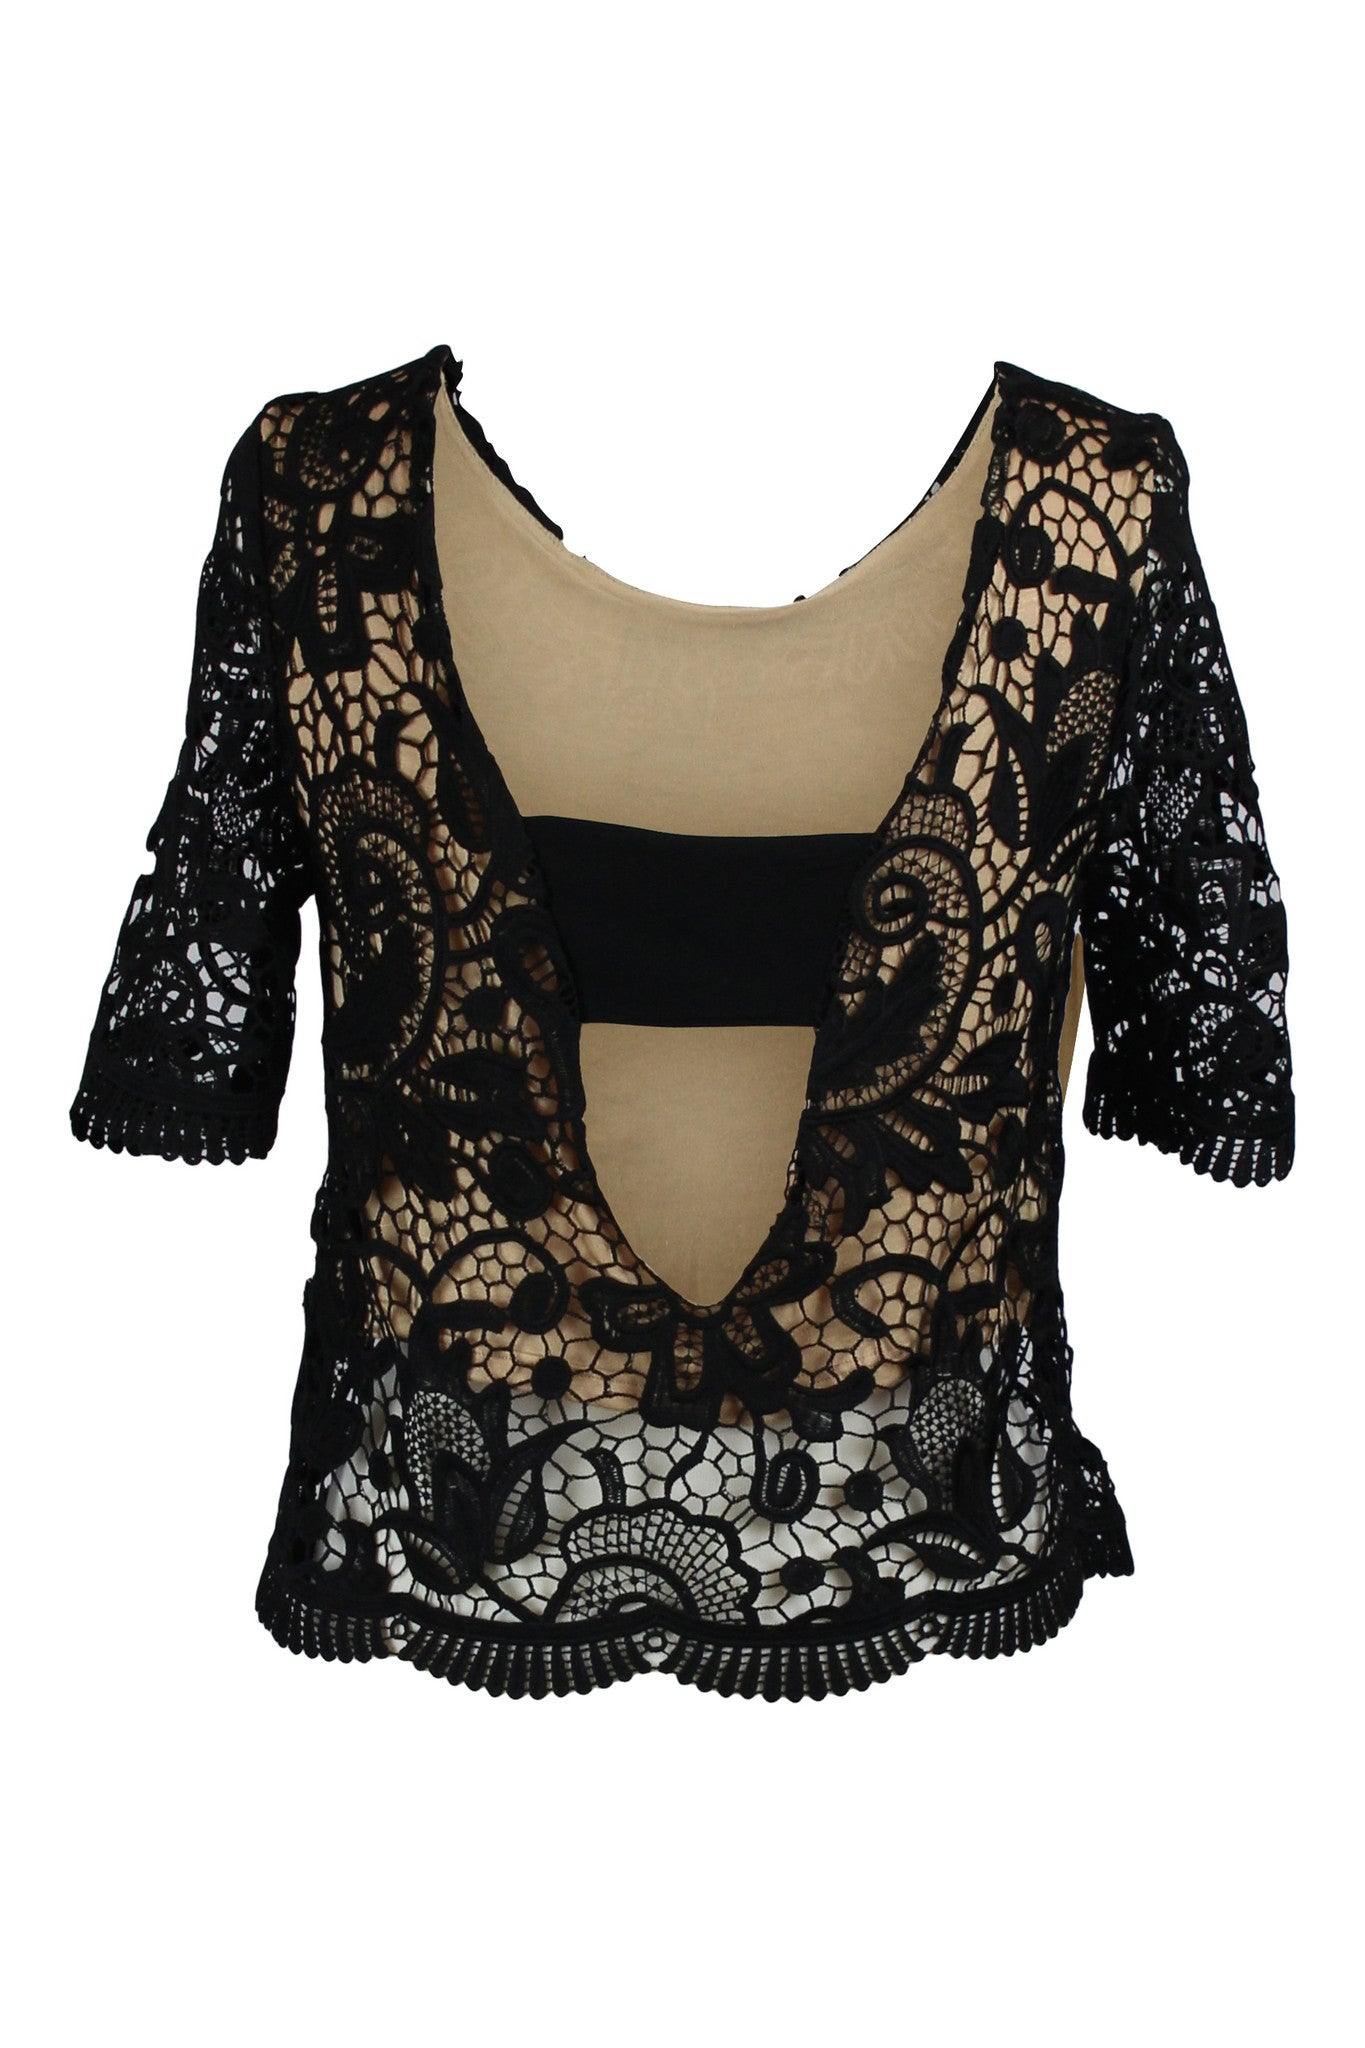 Cocktail Chic Lace Overlay Boxy Top - Black